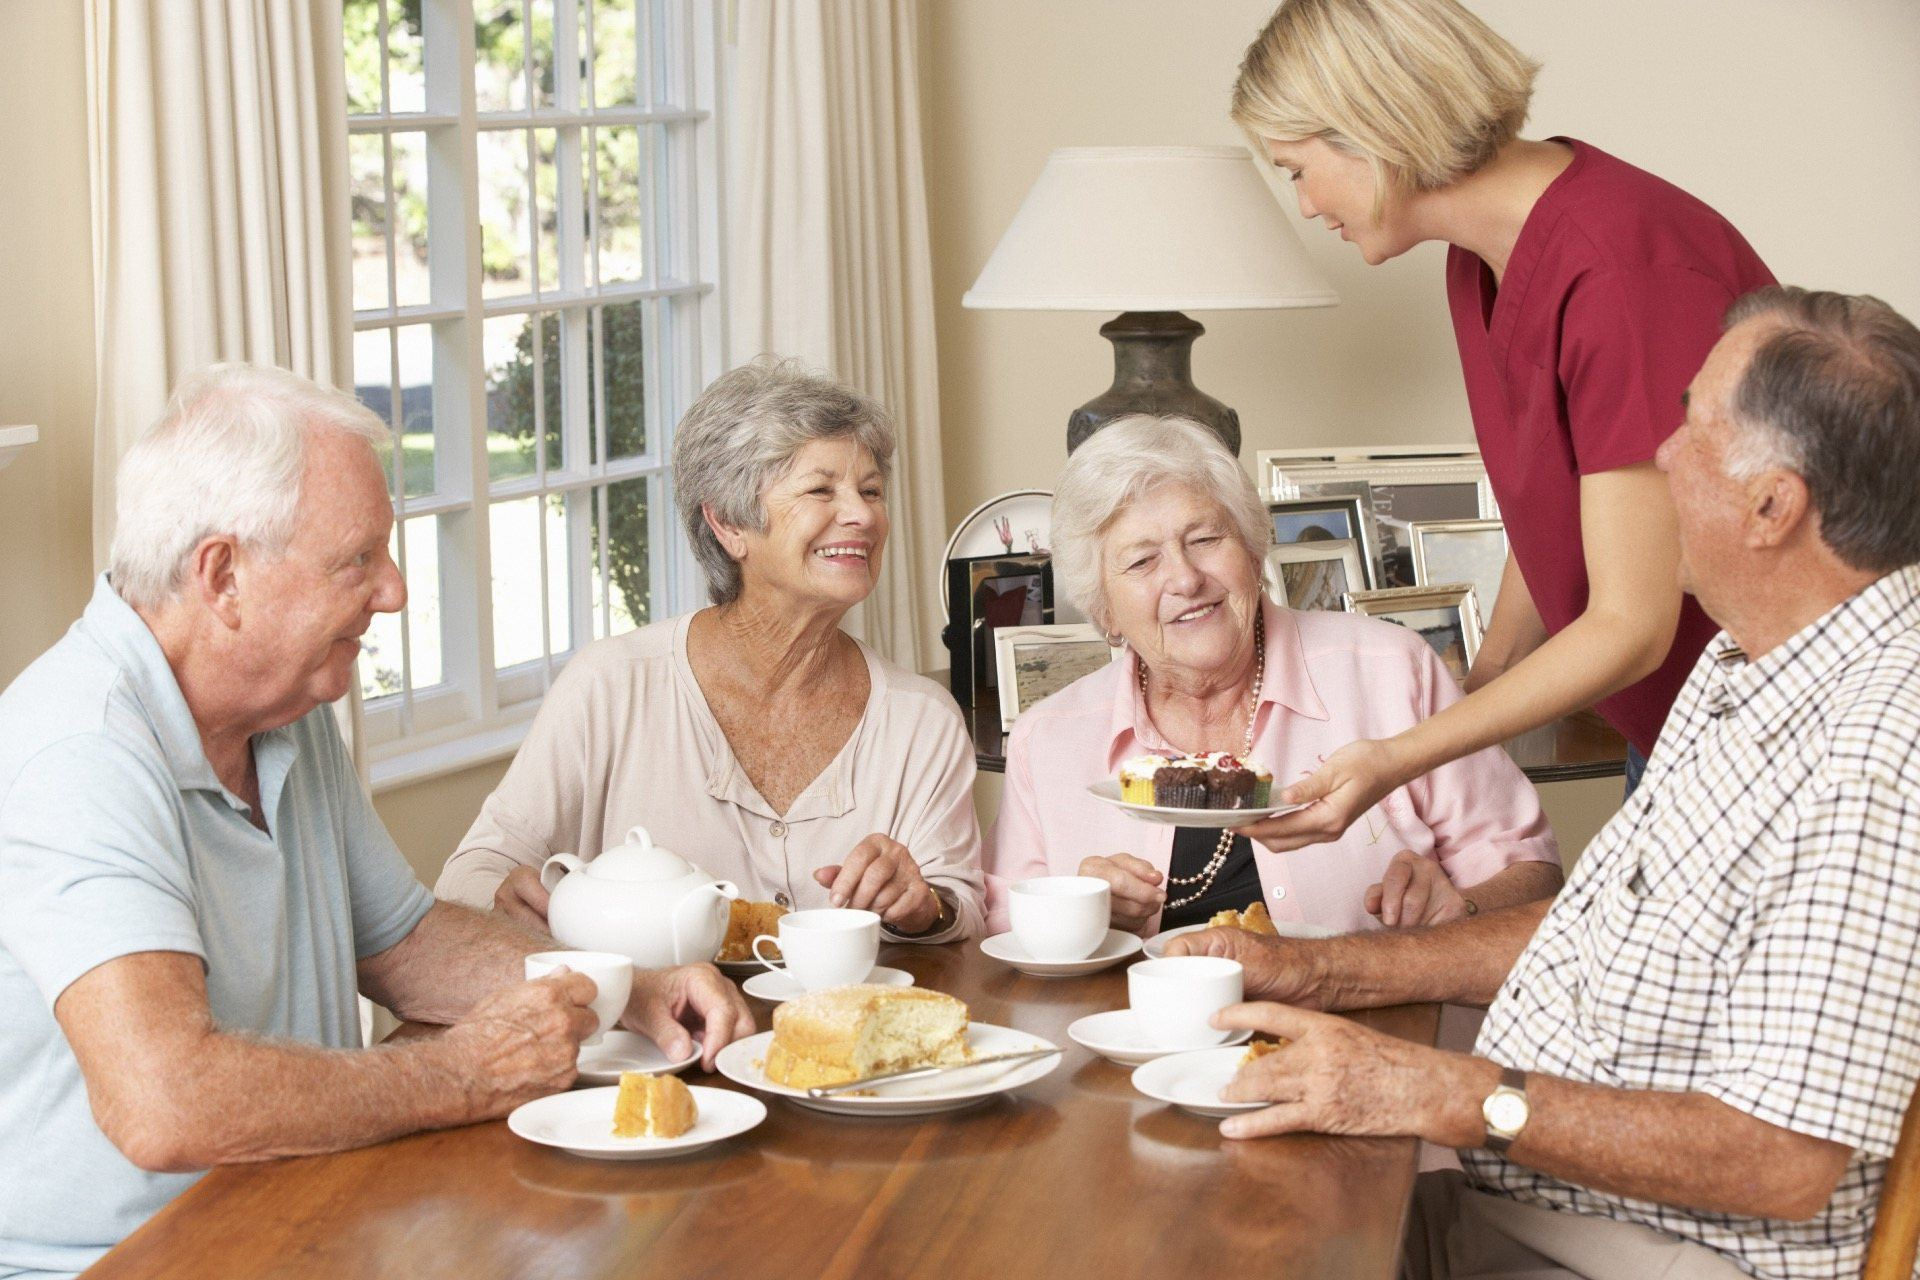 Care homes, what do I need to consider?